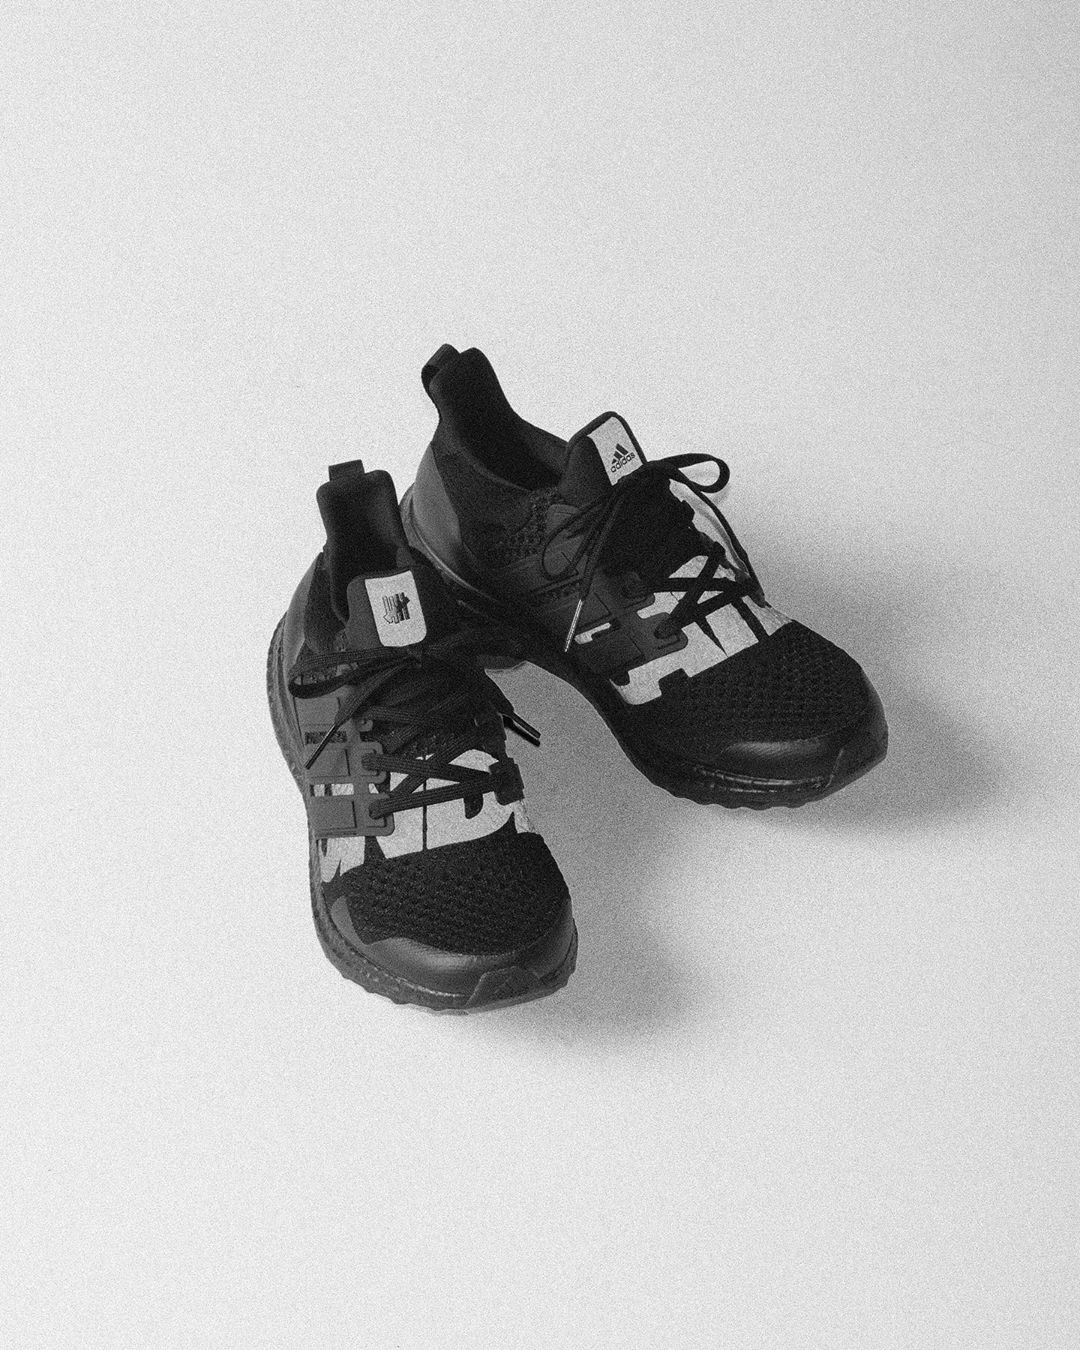 san francisco 36c2d 44341 The UNDEFEATED x adidas Ultra BOOST